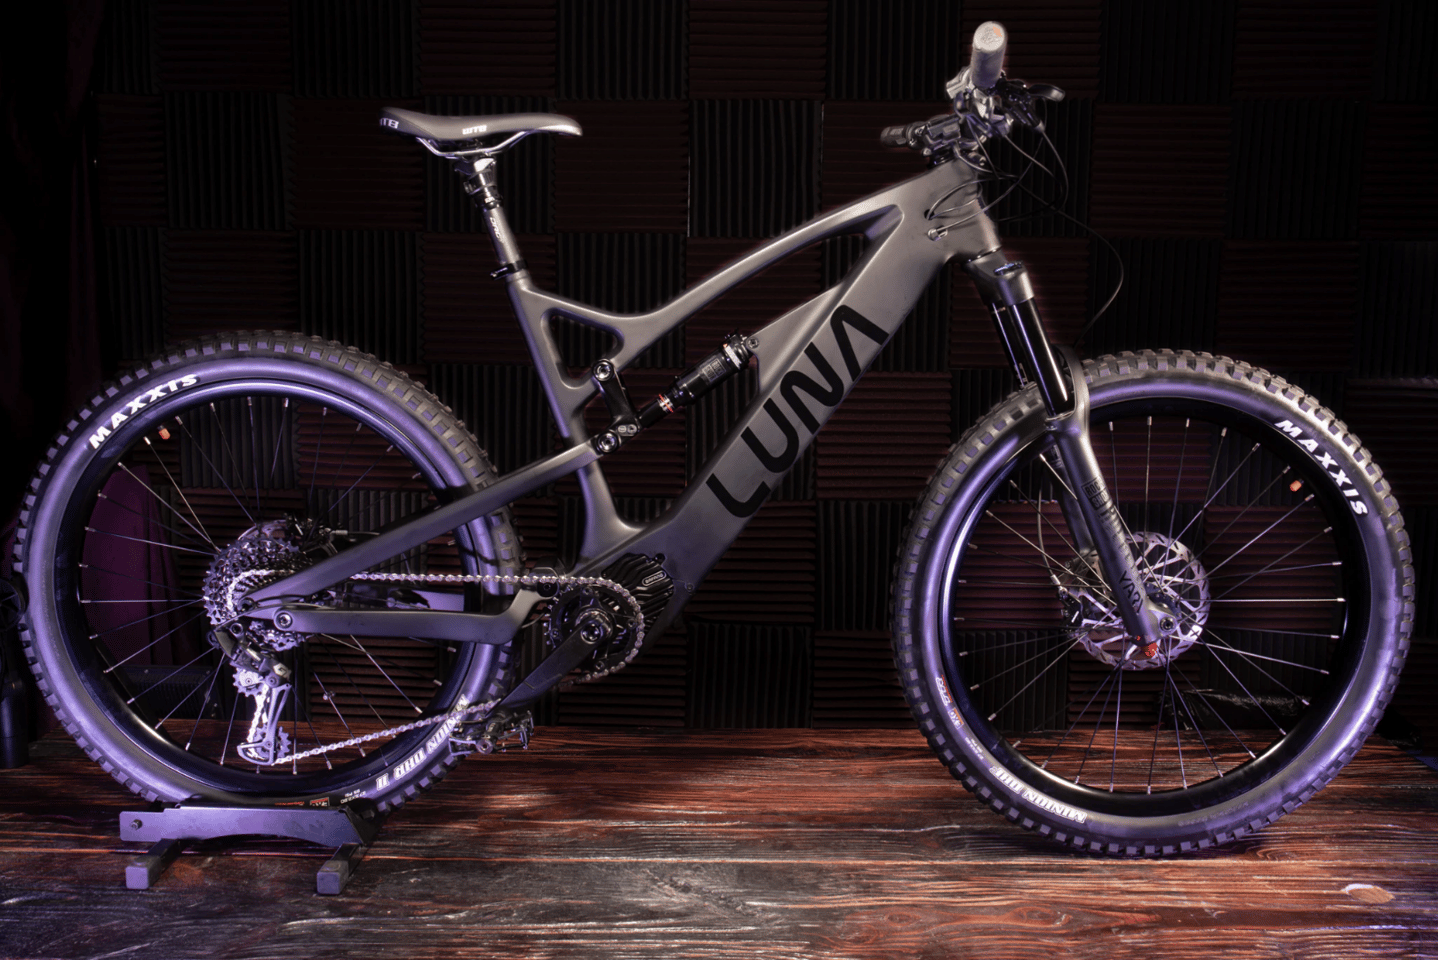 Carbon frame, 2,000-watt mid-drive, high spec componentry, impressive price